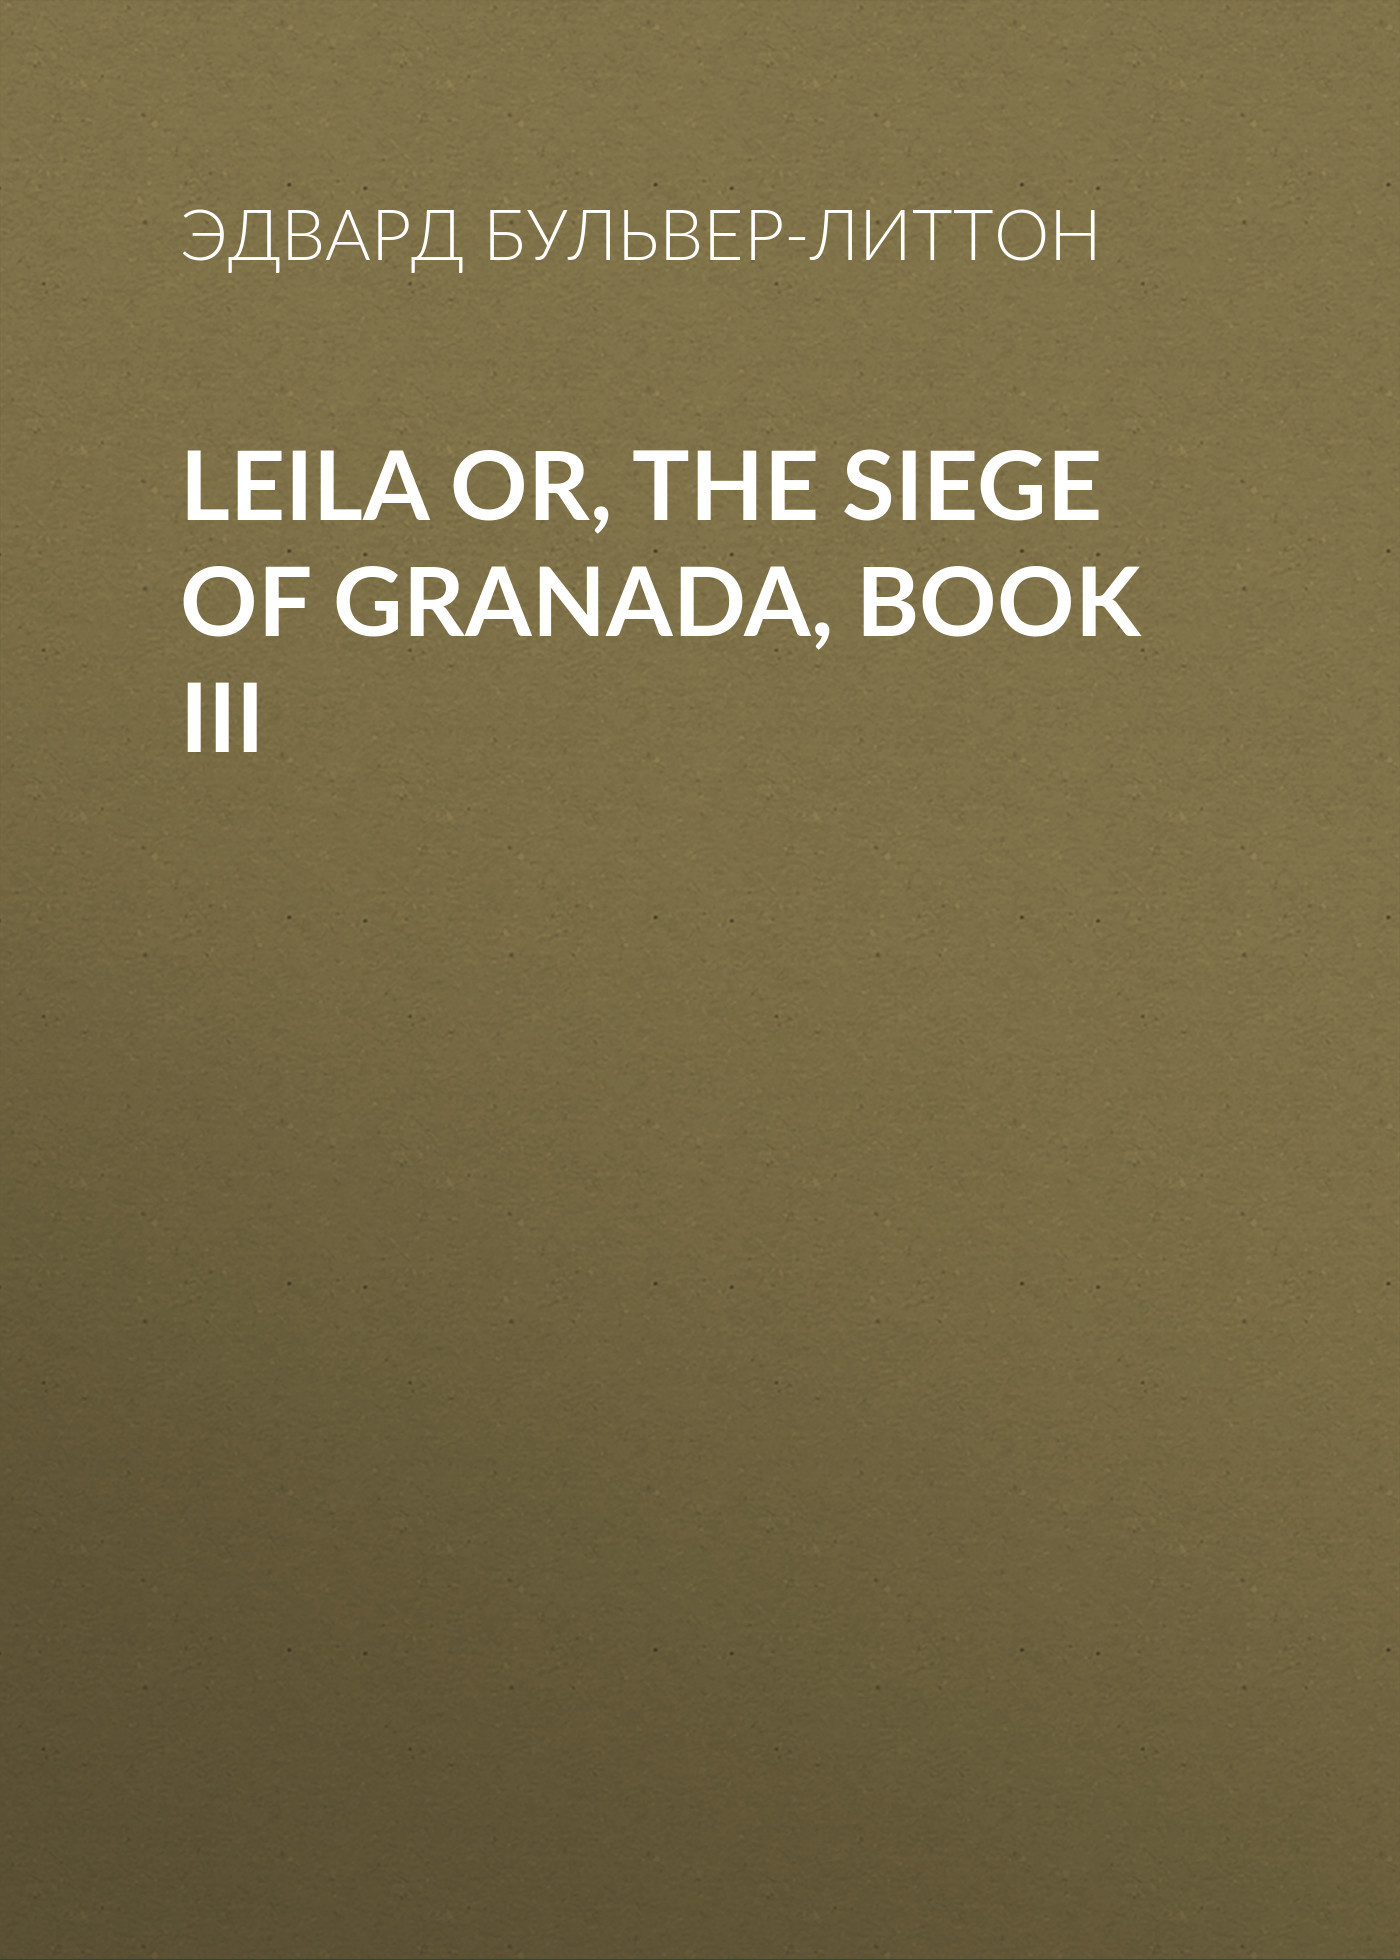 Эдвард Бульвер-Литтон Leila or, the Siege of Granada, Book III